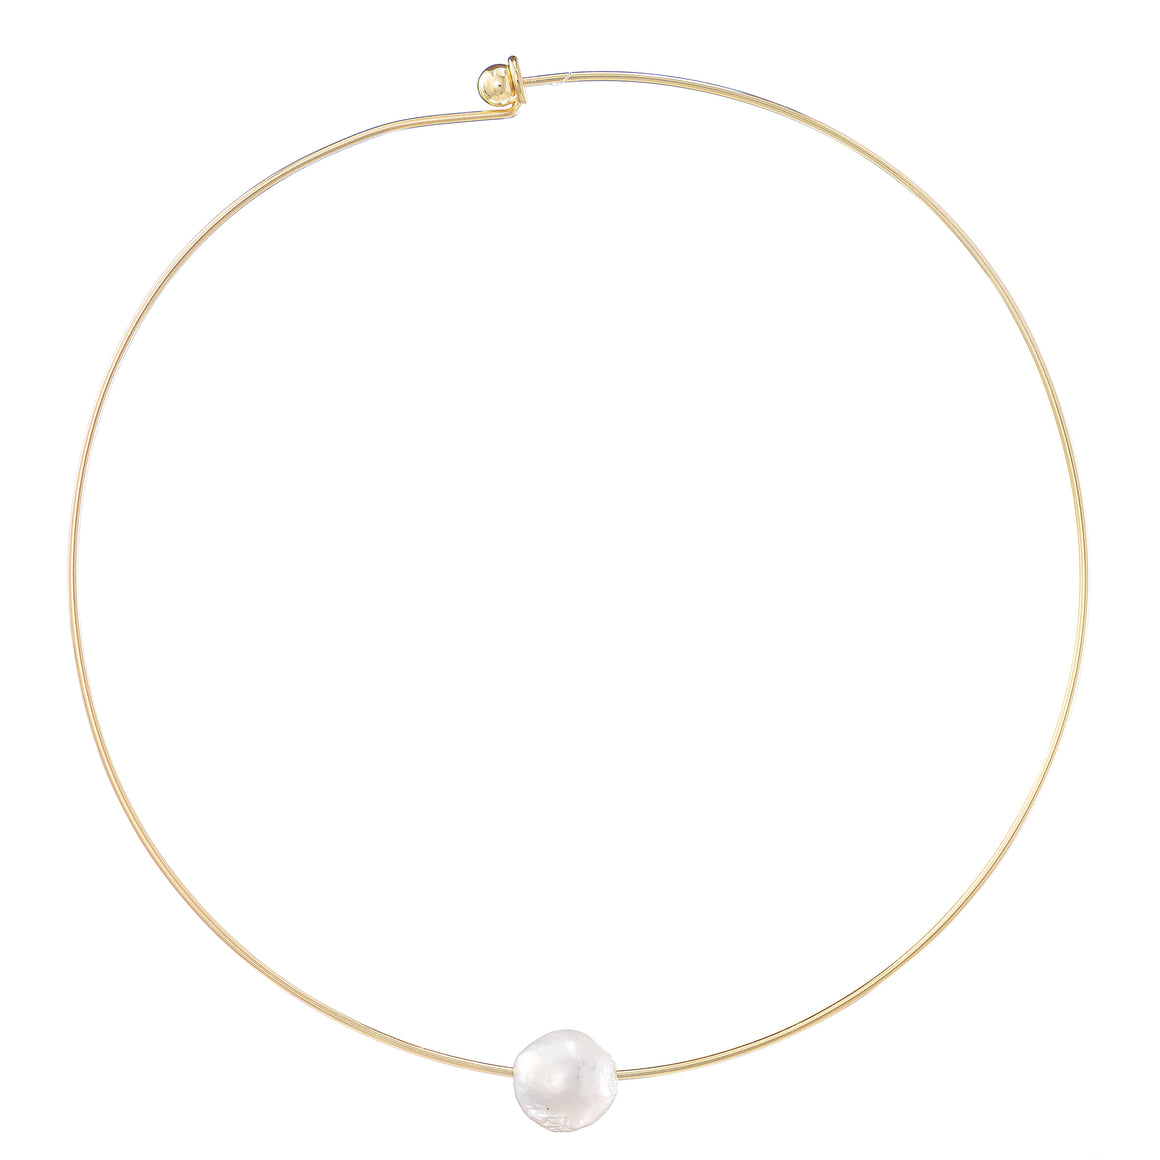 Cultured Baroque Freshwater Floating Pearl Gold Plated Neck Collar